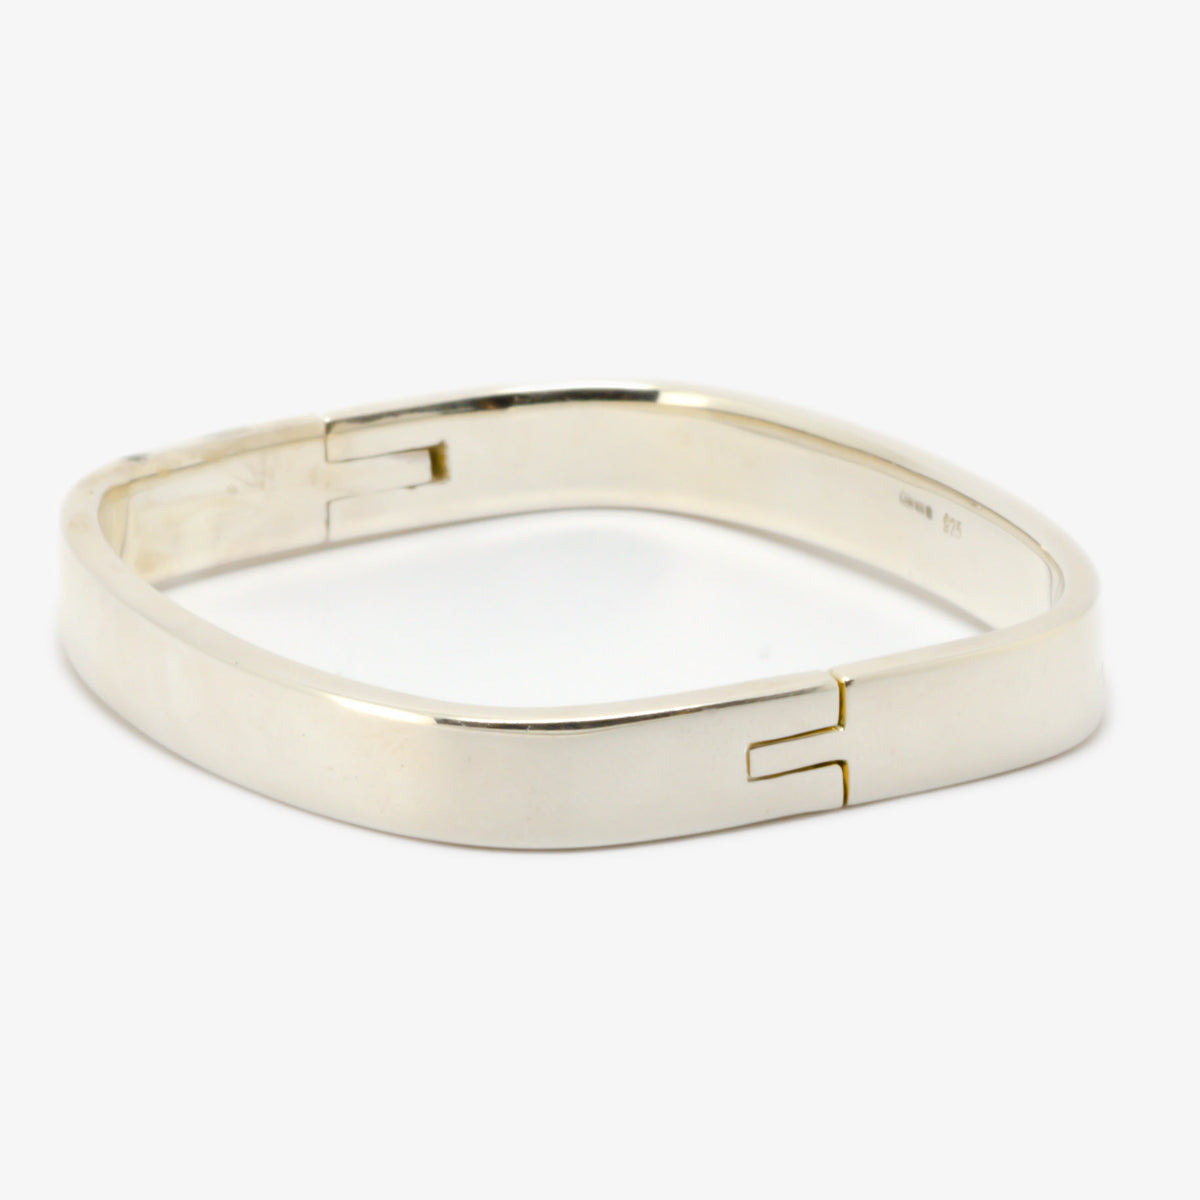 Picture of a bangle in silver shaped like a 'TV' and is hinged on the side making it easy to put on and take off side view.